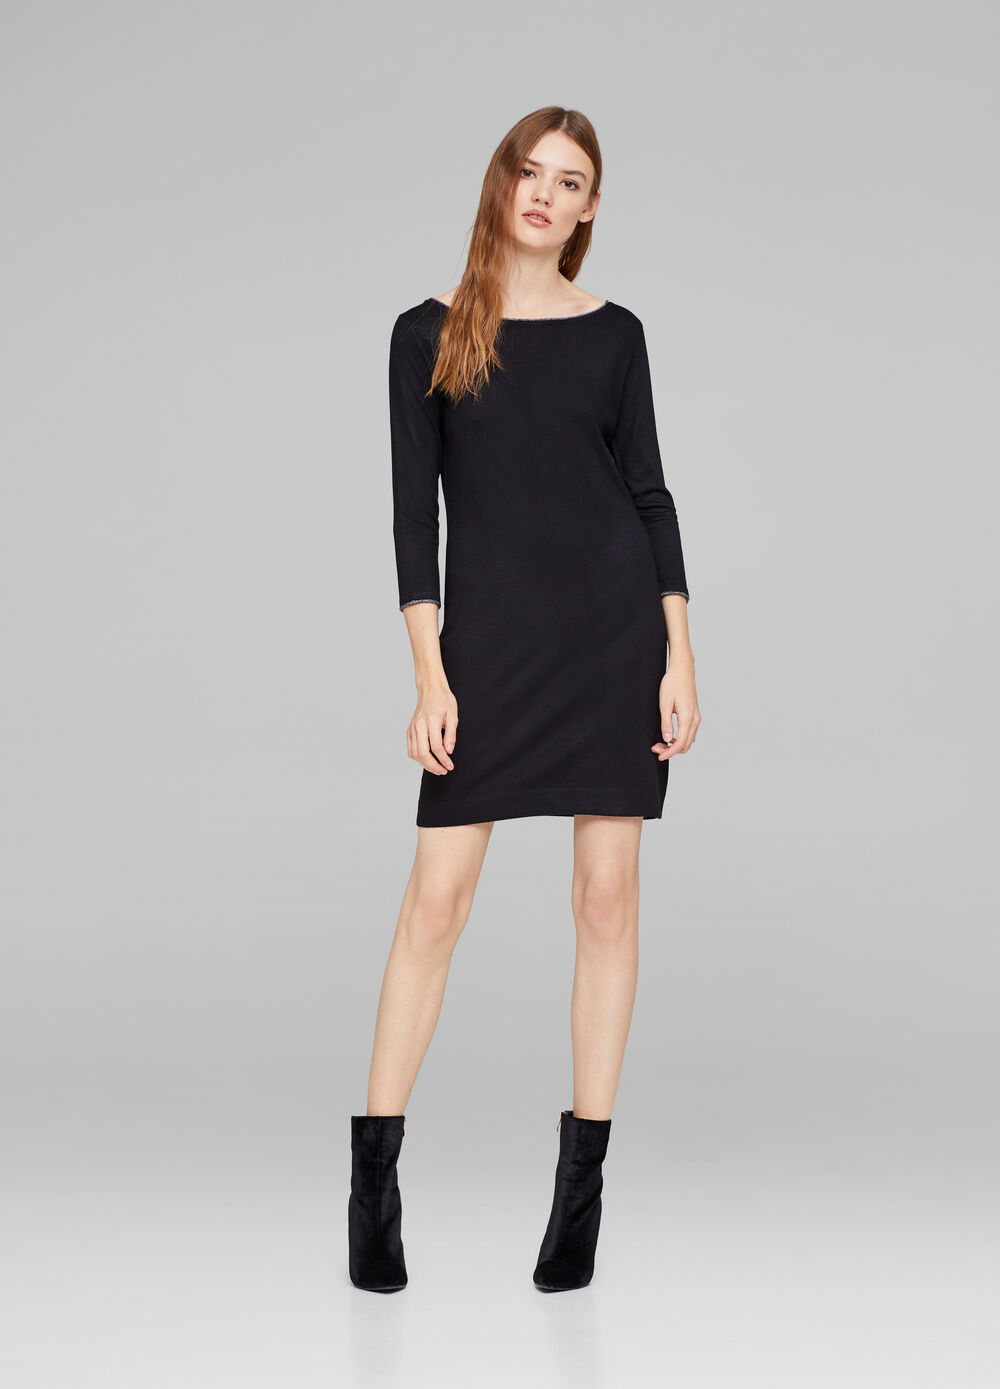 Boat neck dress with glitter